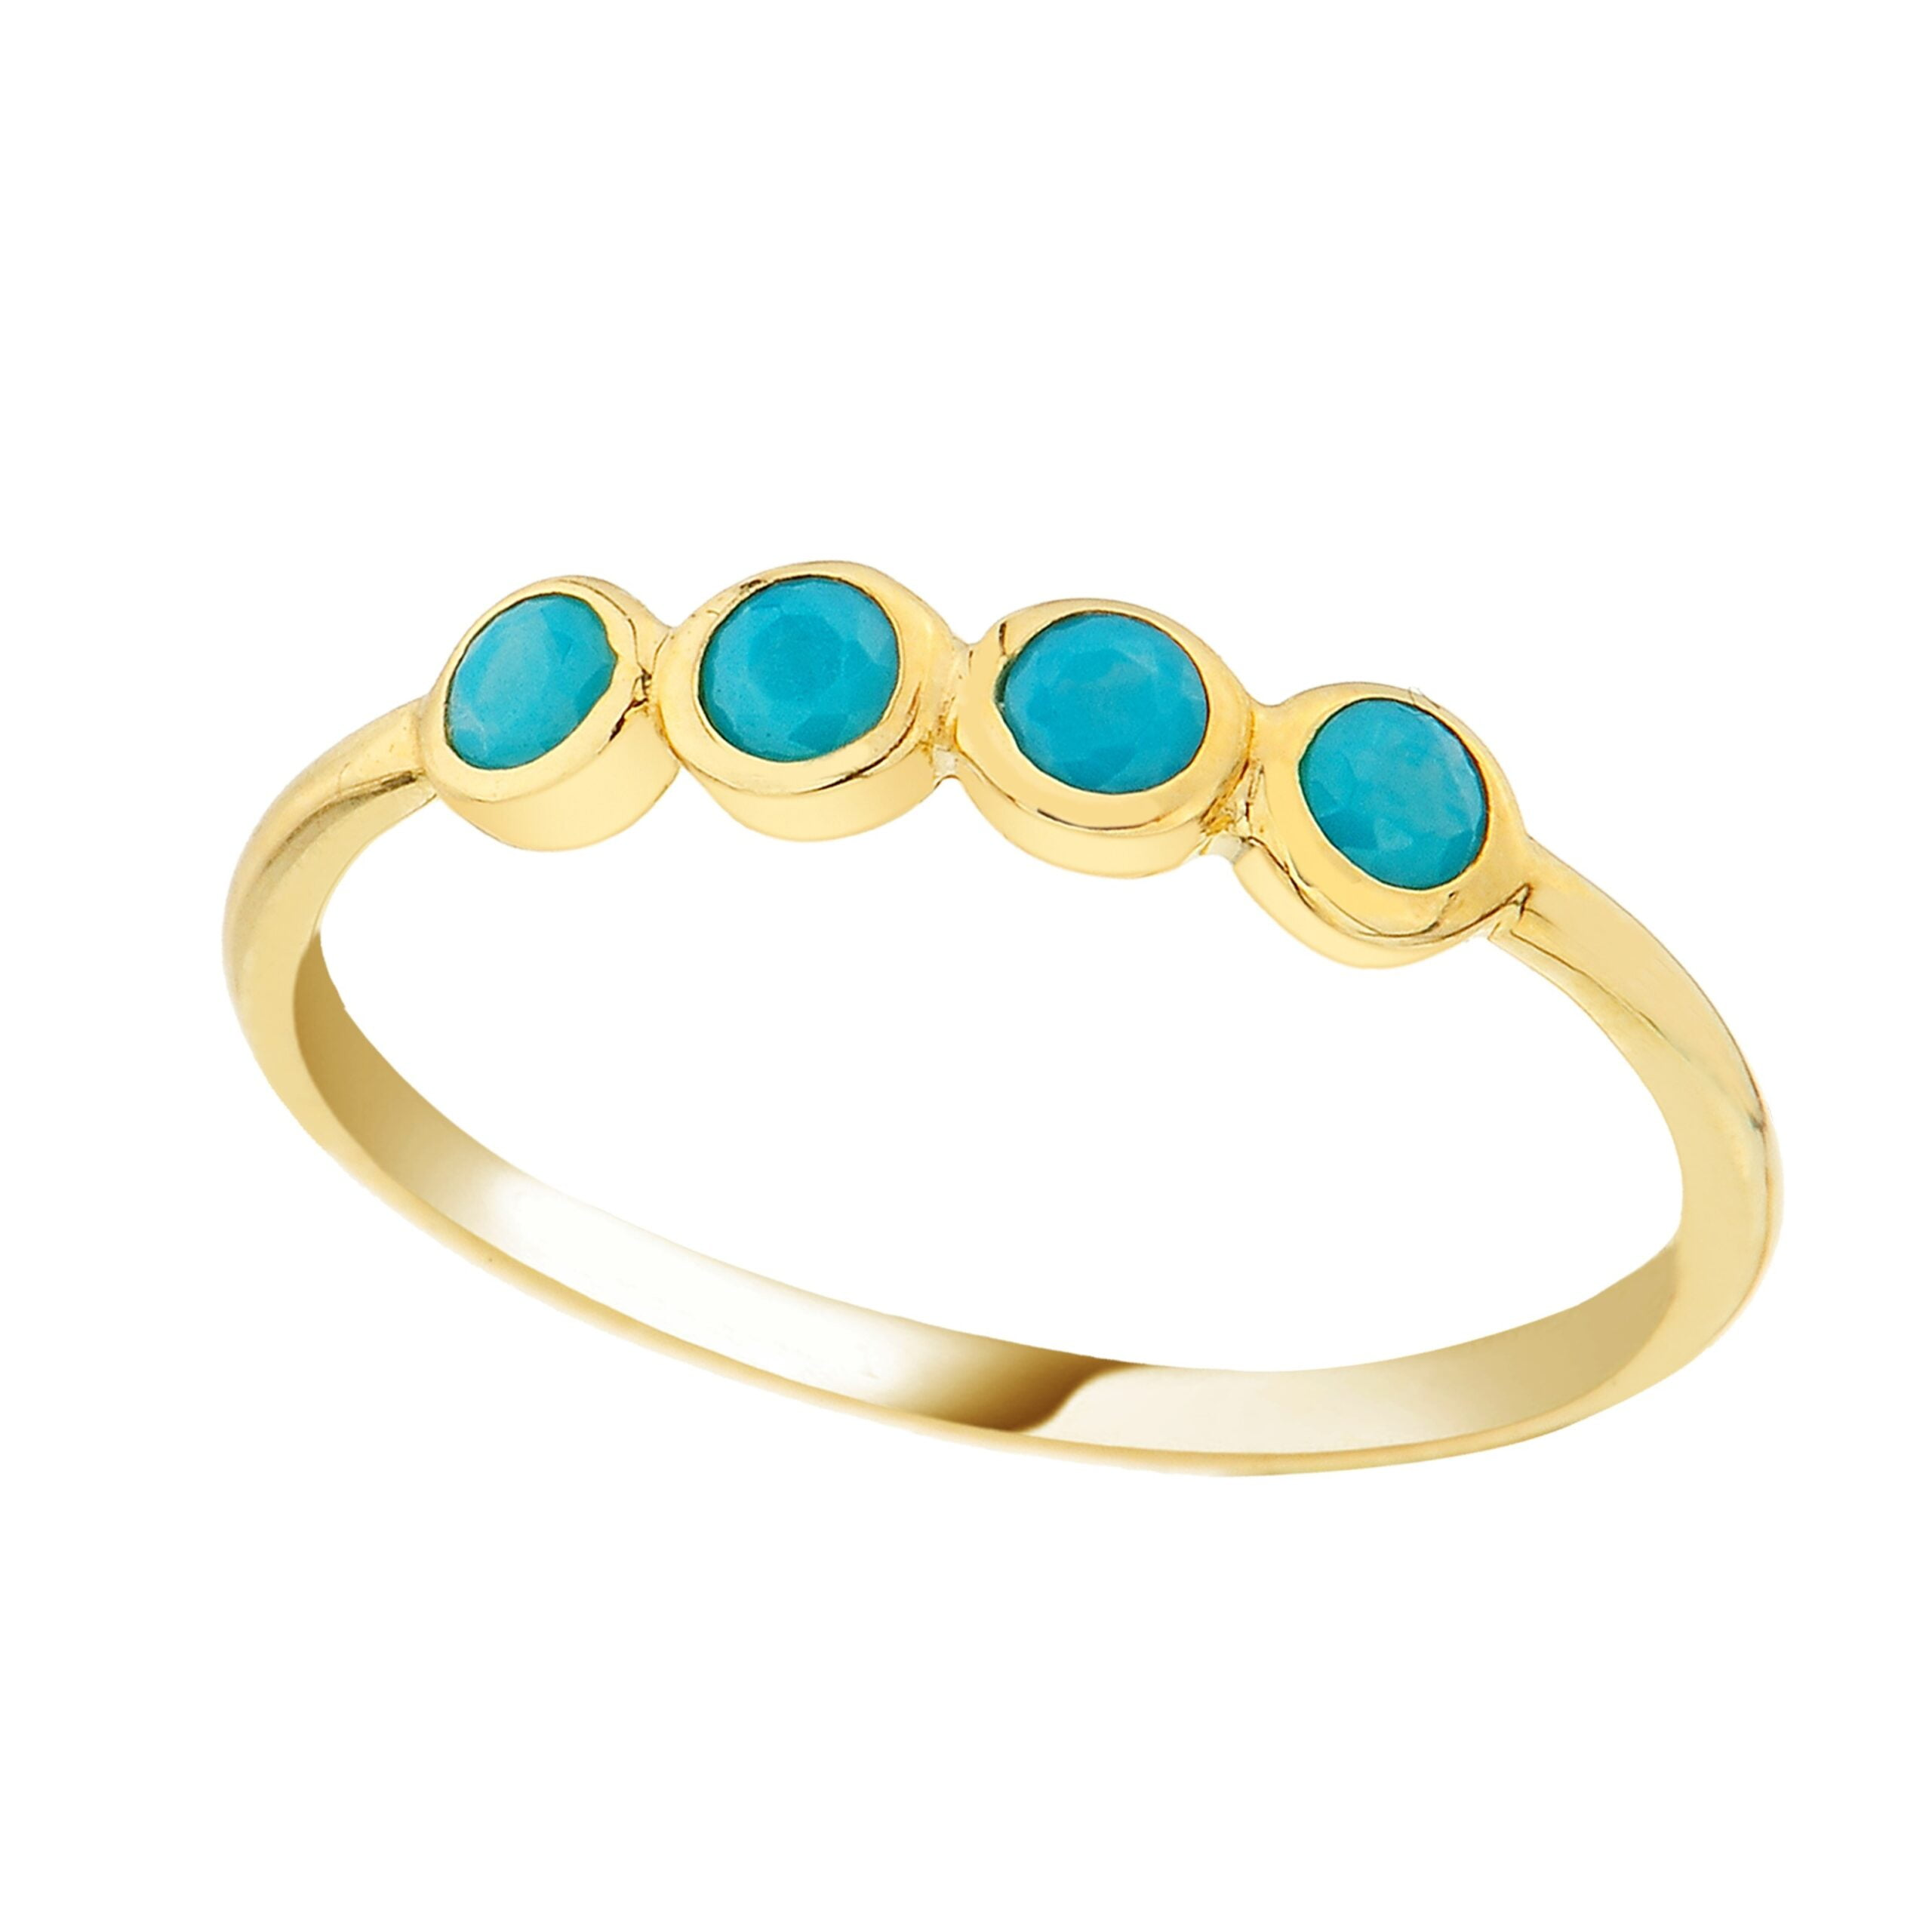 14K Real Solid Gold Four Turquoise Ring for Women | December Birthstone Ring jewelry rings birthday gift christmas xmas mother's day handmade